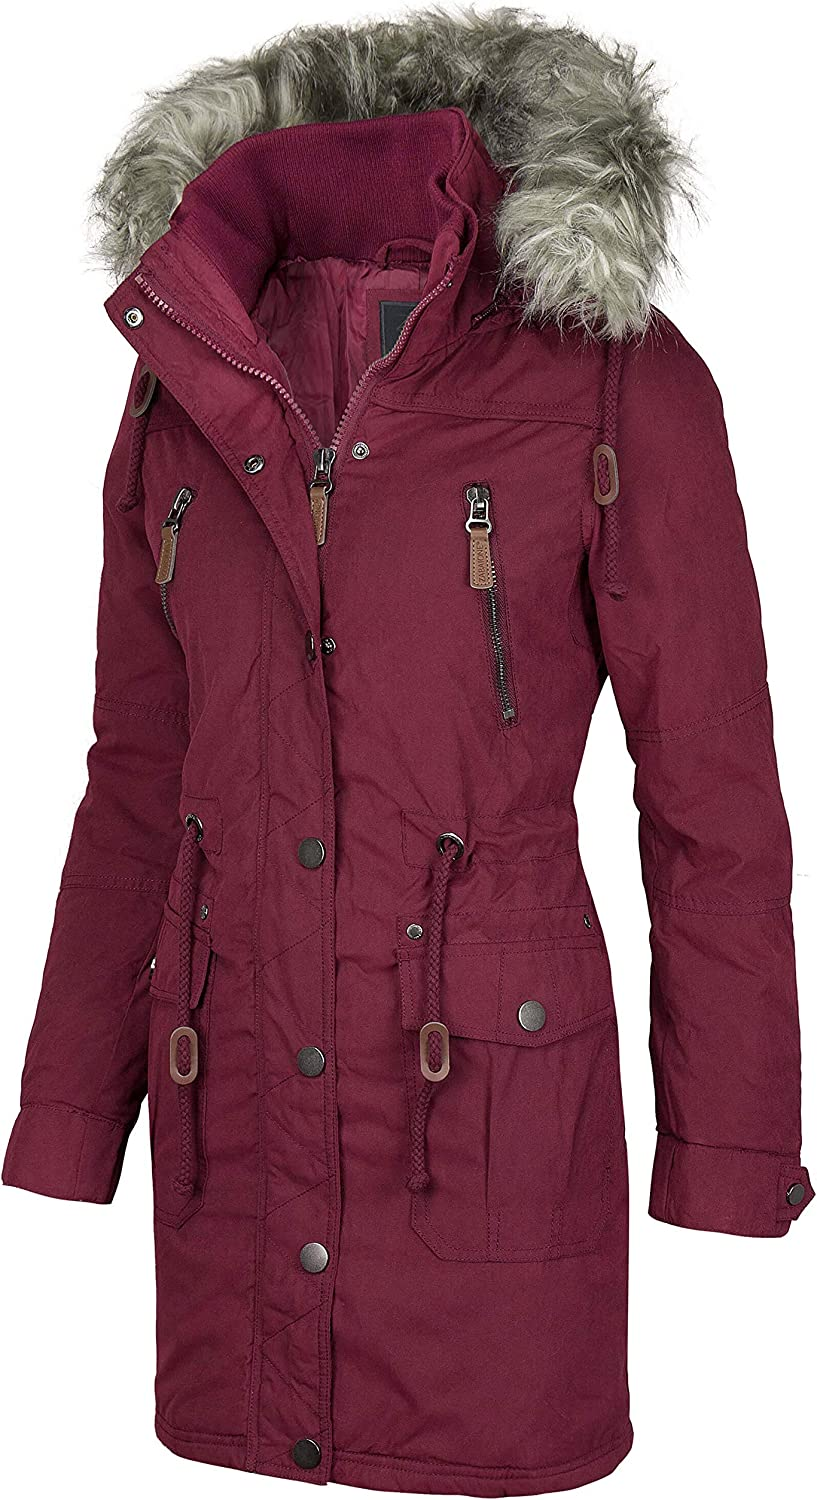 Zabaione Damen Winter Mantel Kuntsfell Kapuze 6 Pockets